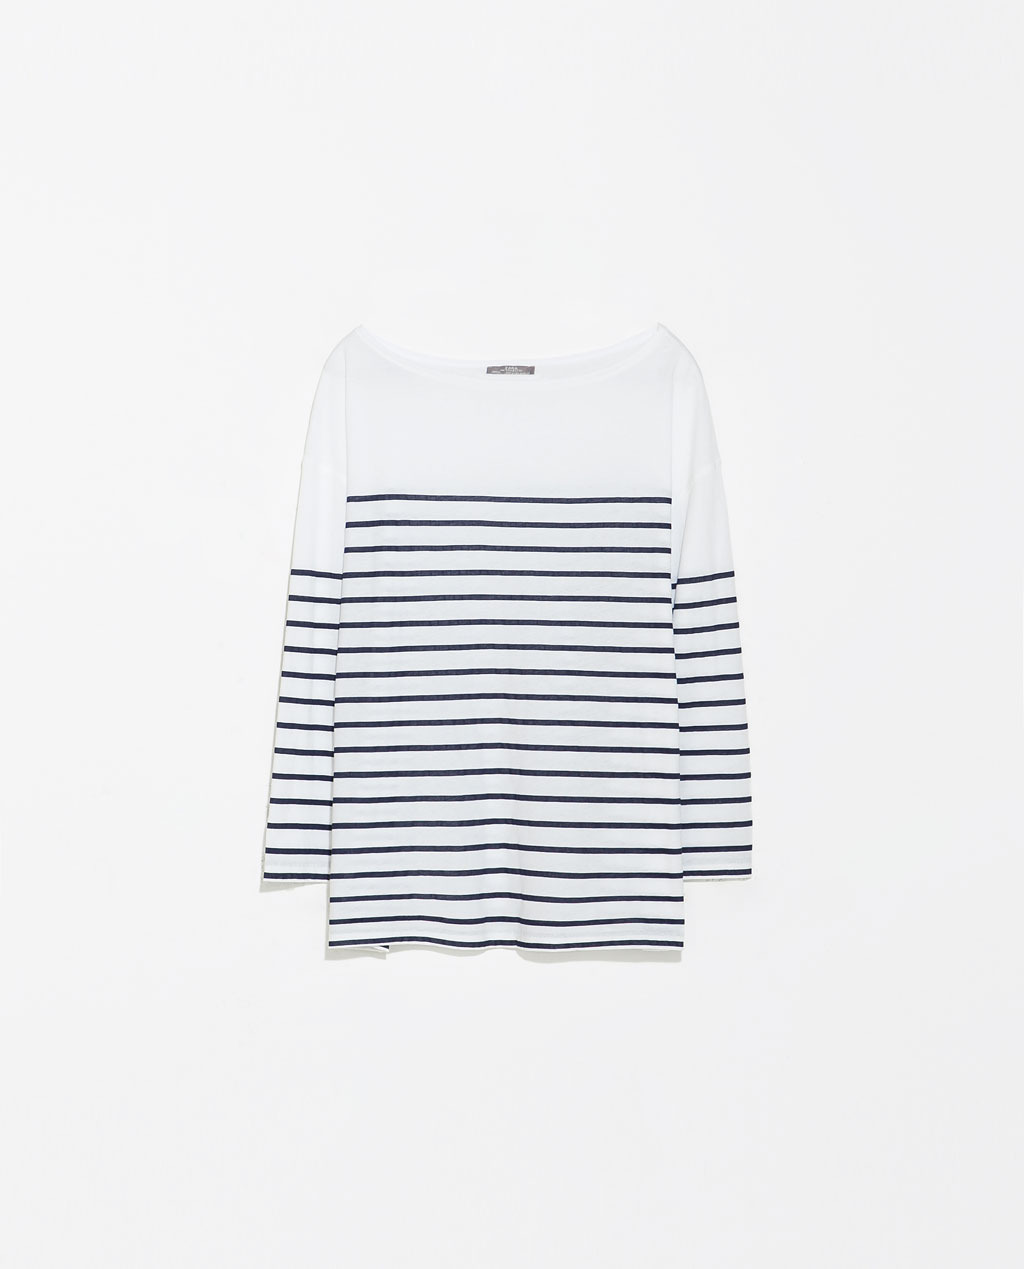 Striped T Shirt - neckline: slash/boat neckline; pattern: horizontal stripes; style: t-shirt; secondary colour: white; predominant colour: navy; occasions: casual, work, creative work; length: standard; fibres: cotton - 100%; fit: straight cut; sleeve length: 3/4 length; sleeve style: standard; pattern type: fabric; texture group: jersey - stretchy/drapey; season: s/s 2014; pattern size: big & busy (top)